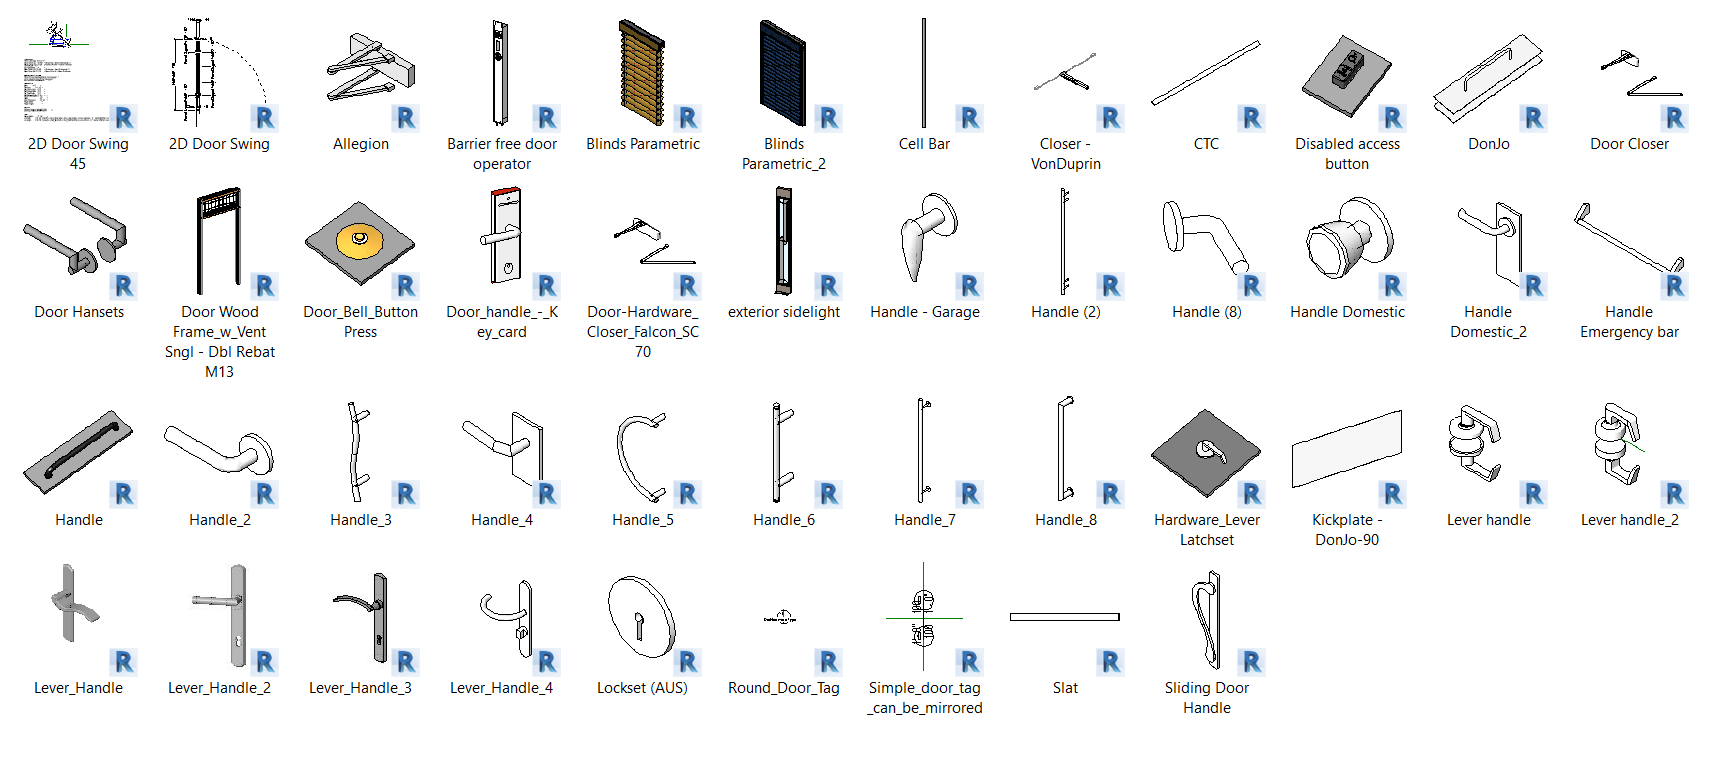 Doors - Accessories Gallery.PNG